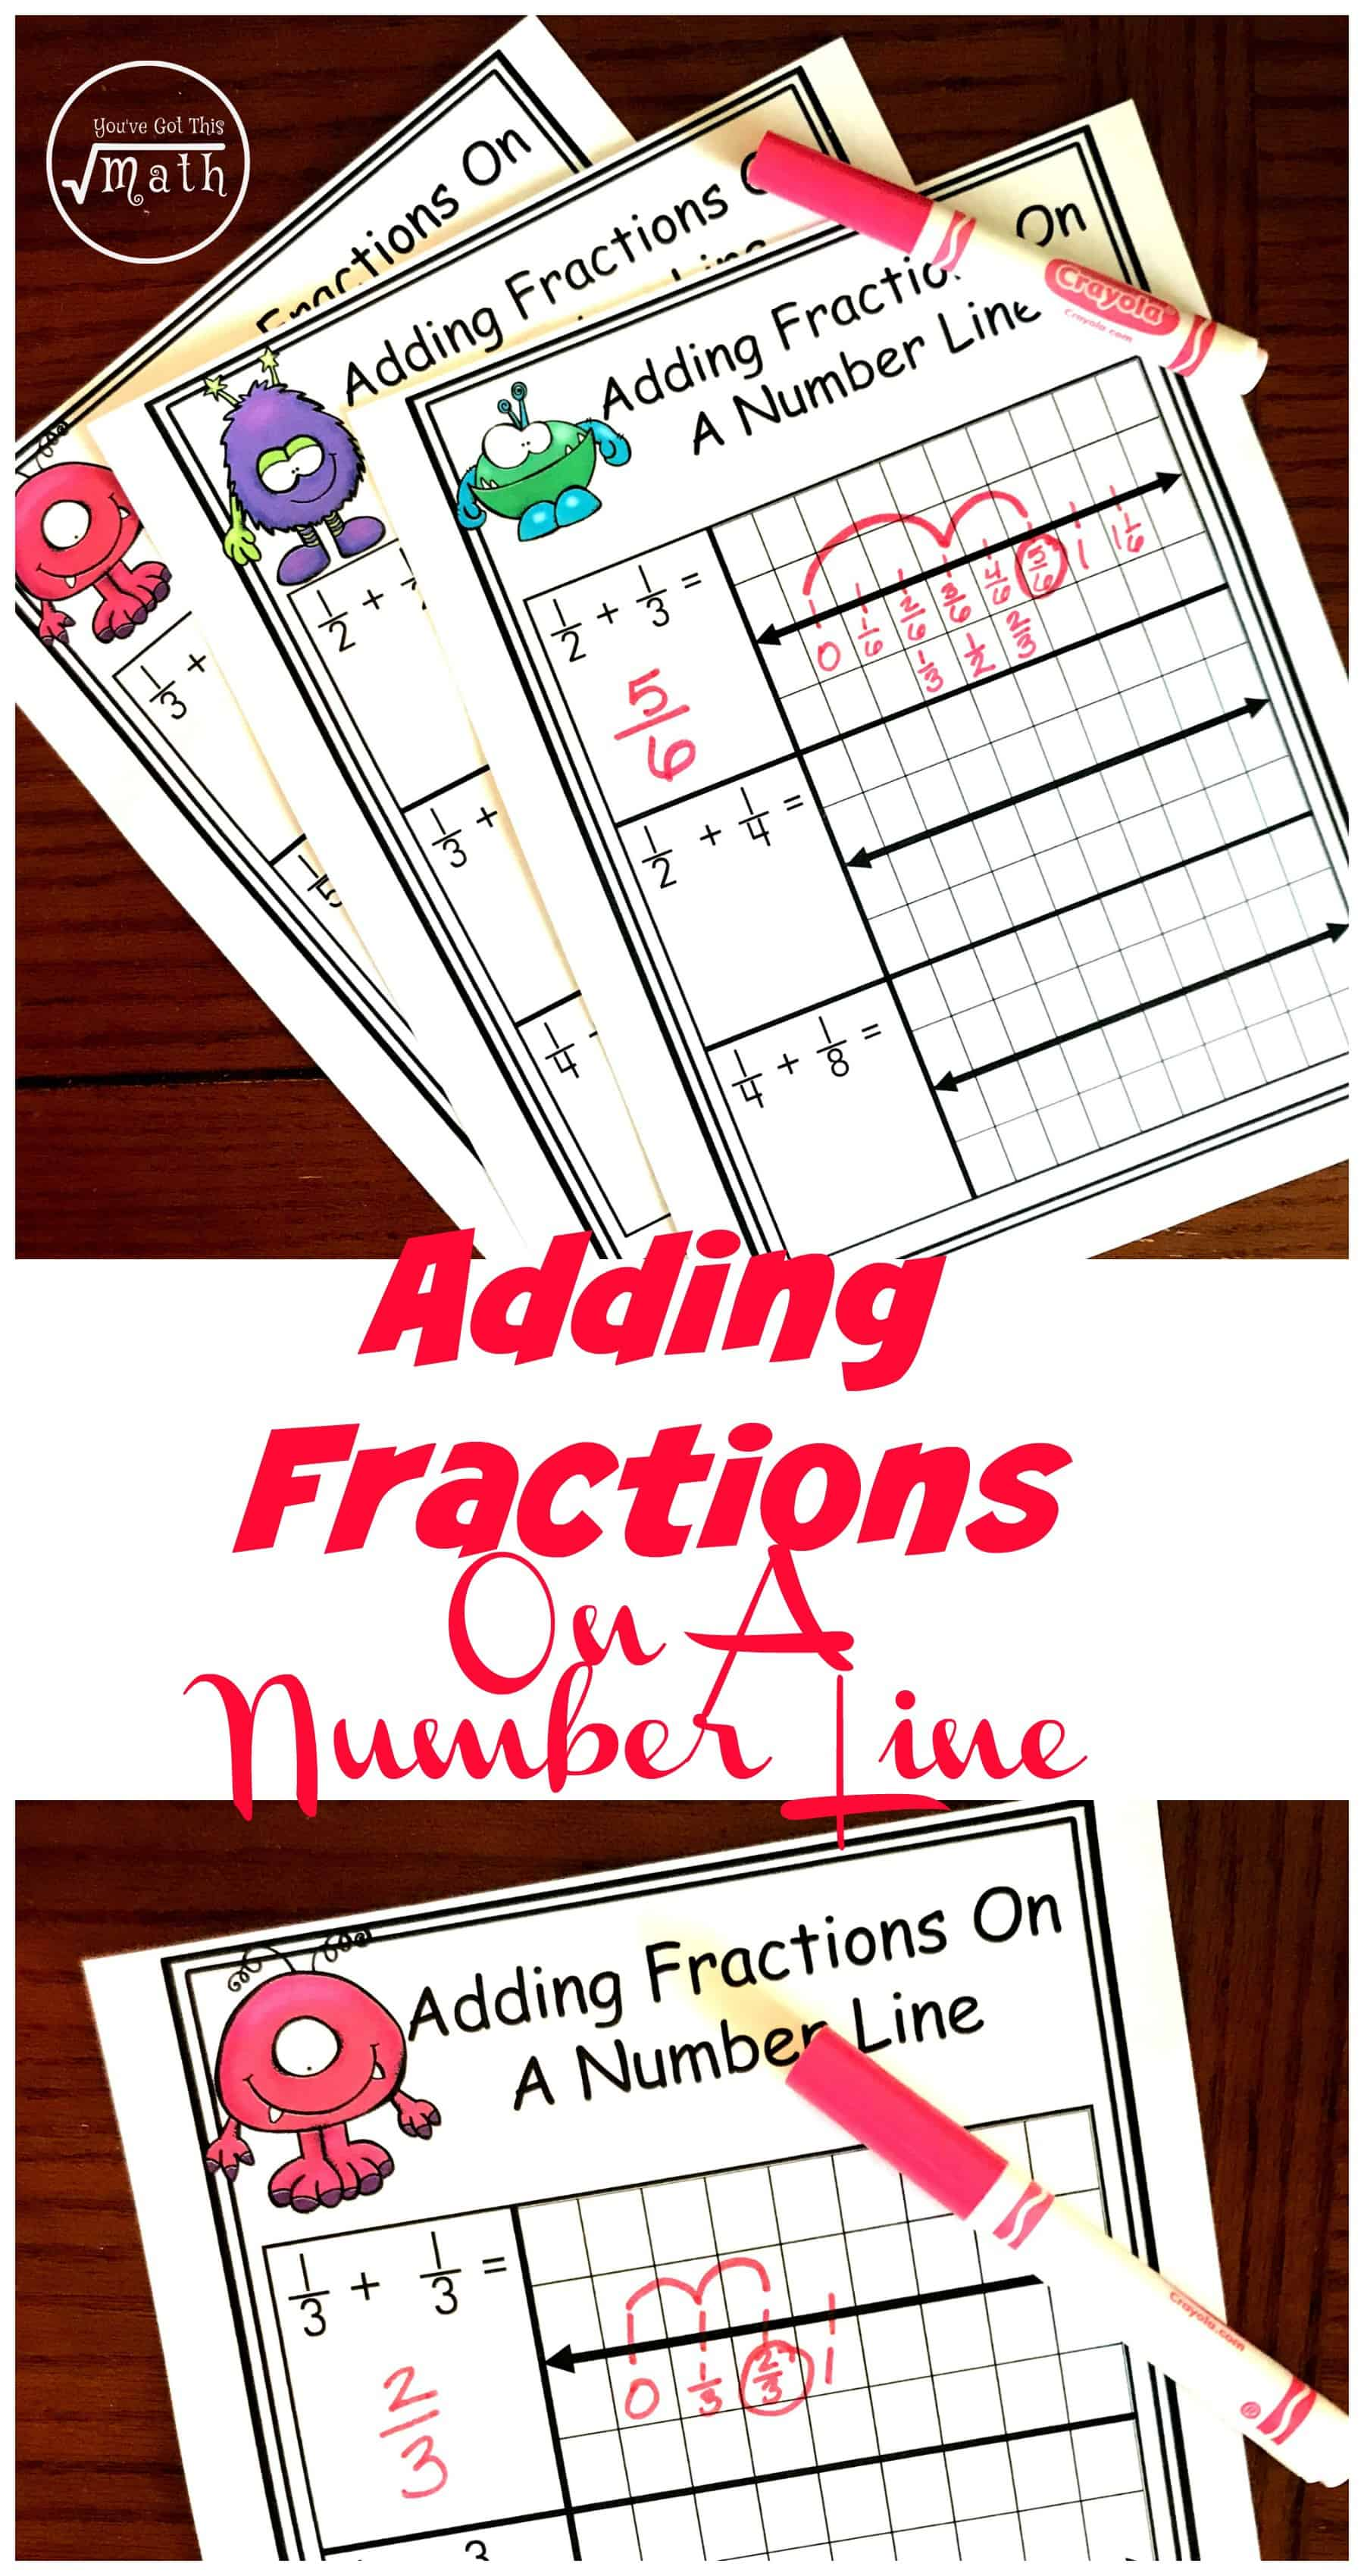 Free Worksheets for Adding Fractions With Unlike Denominators on a Number  Line [ 3400 x 1800 Pixel ]